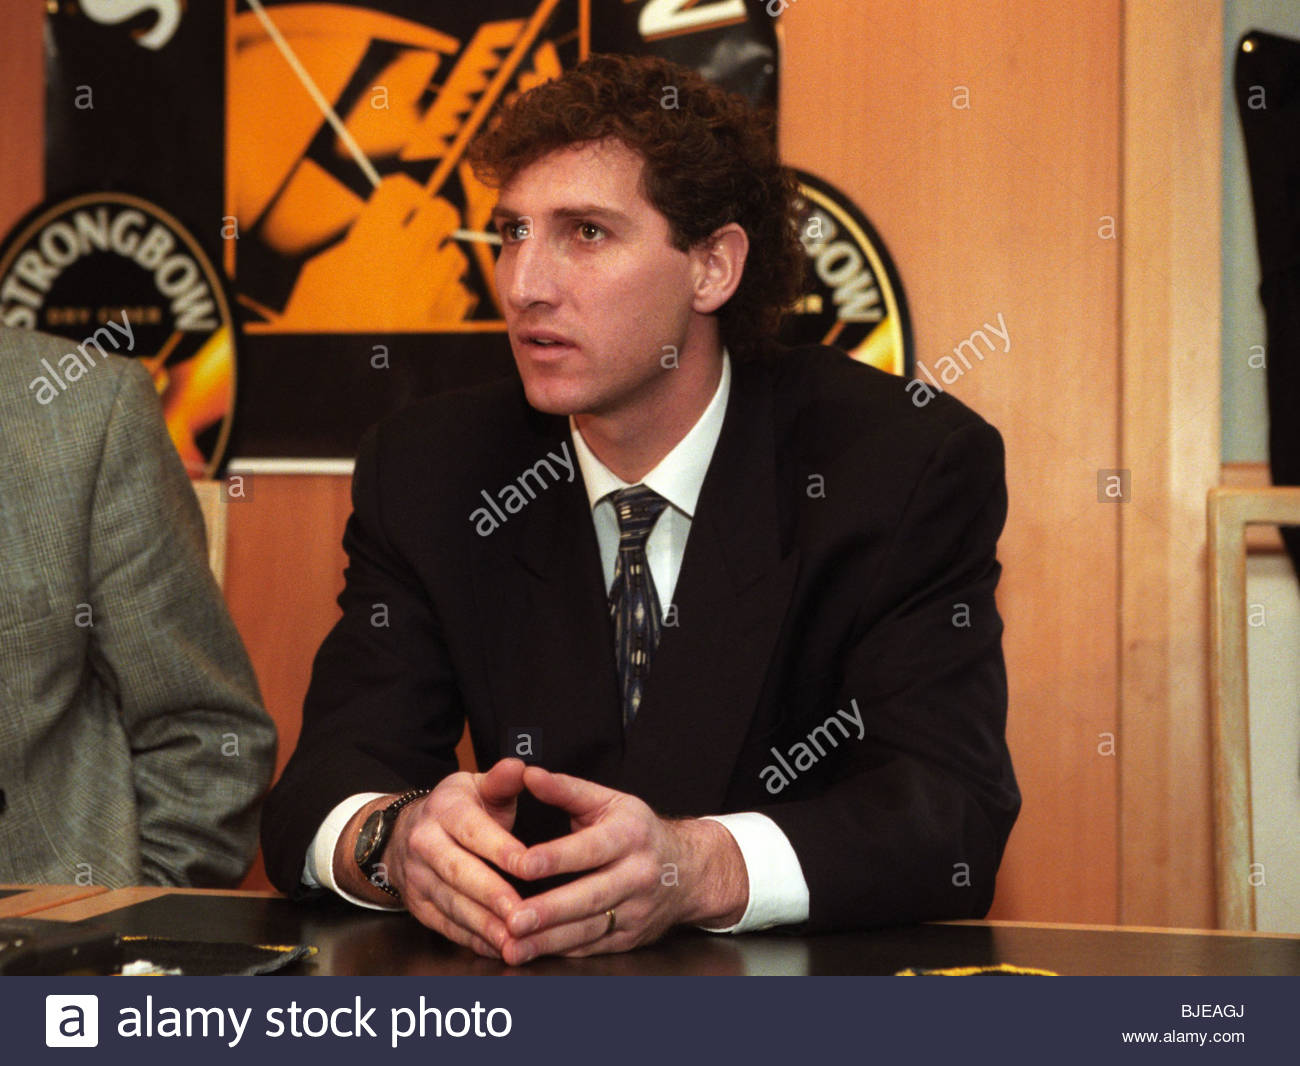 FEBRUARY 1996 TYNECASTLE - EDINBURGH Hearts keeper Gilles Rousset speaks to the press after signing a new deal with - Stock Image